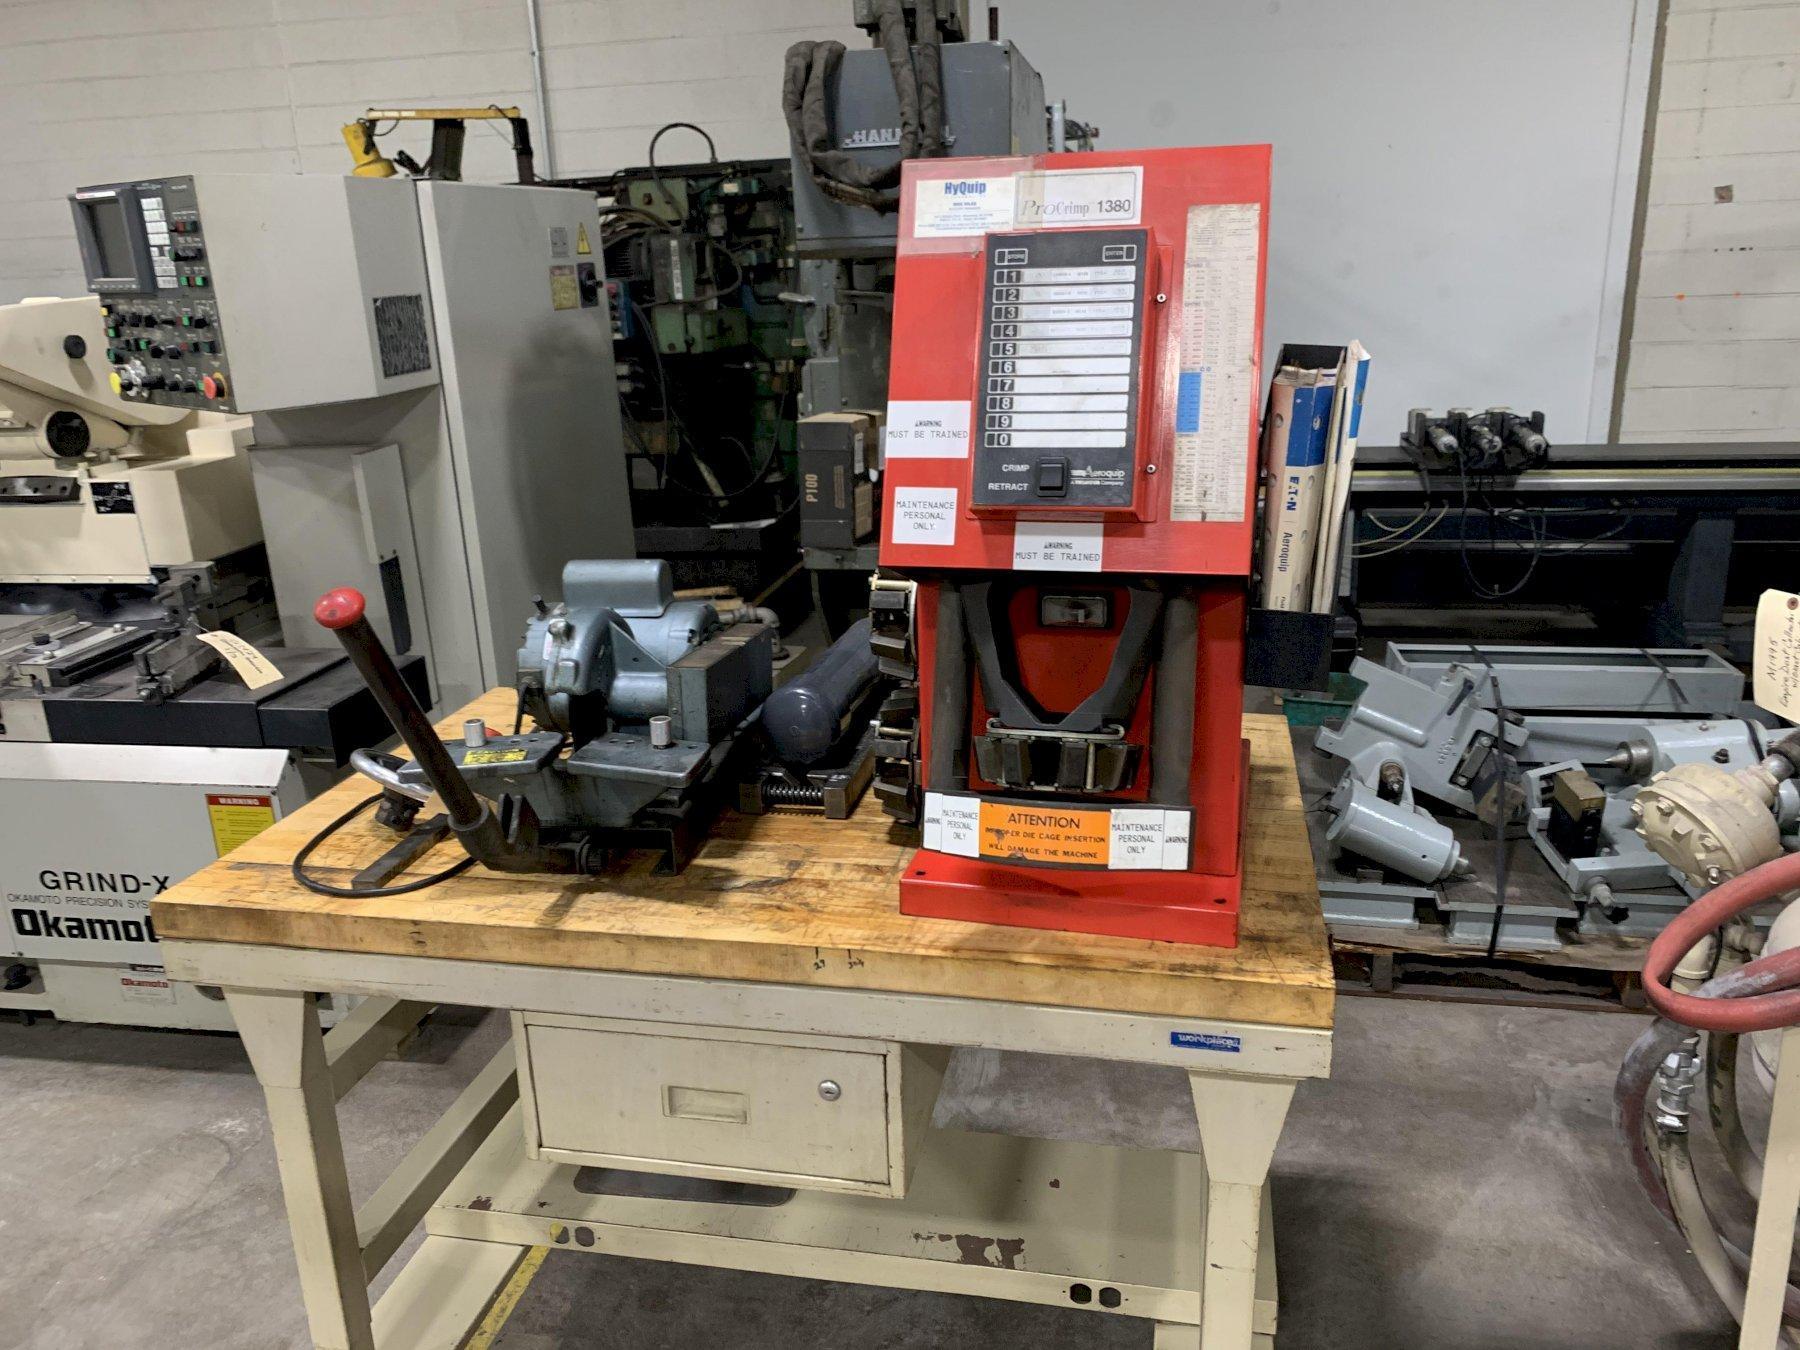 Eaton Aeroquip FT1380-115 Model A Crimp Machine Mounted on Workbench